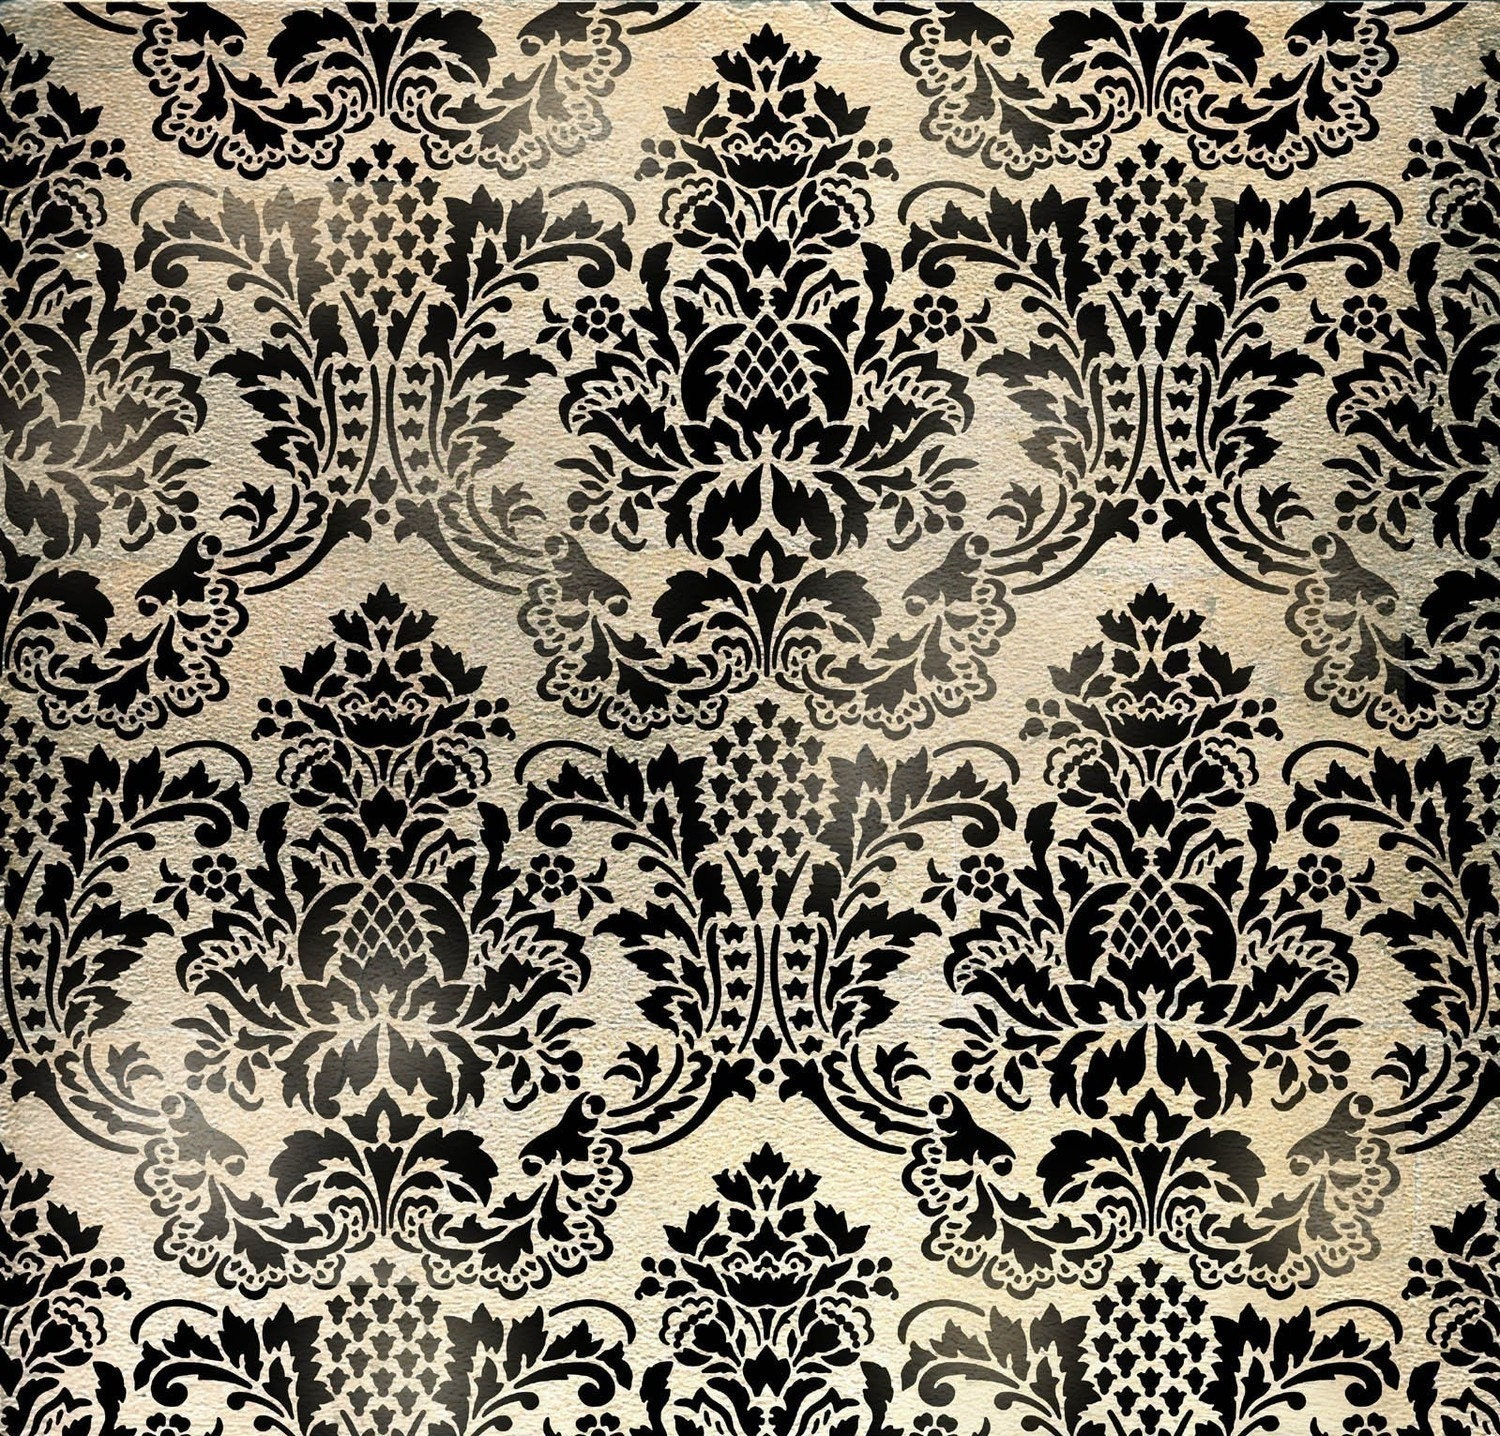 Wall stencil damask flora allover wallpaper pattern stencil for Cool wall patterns